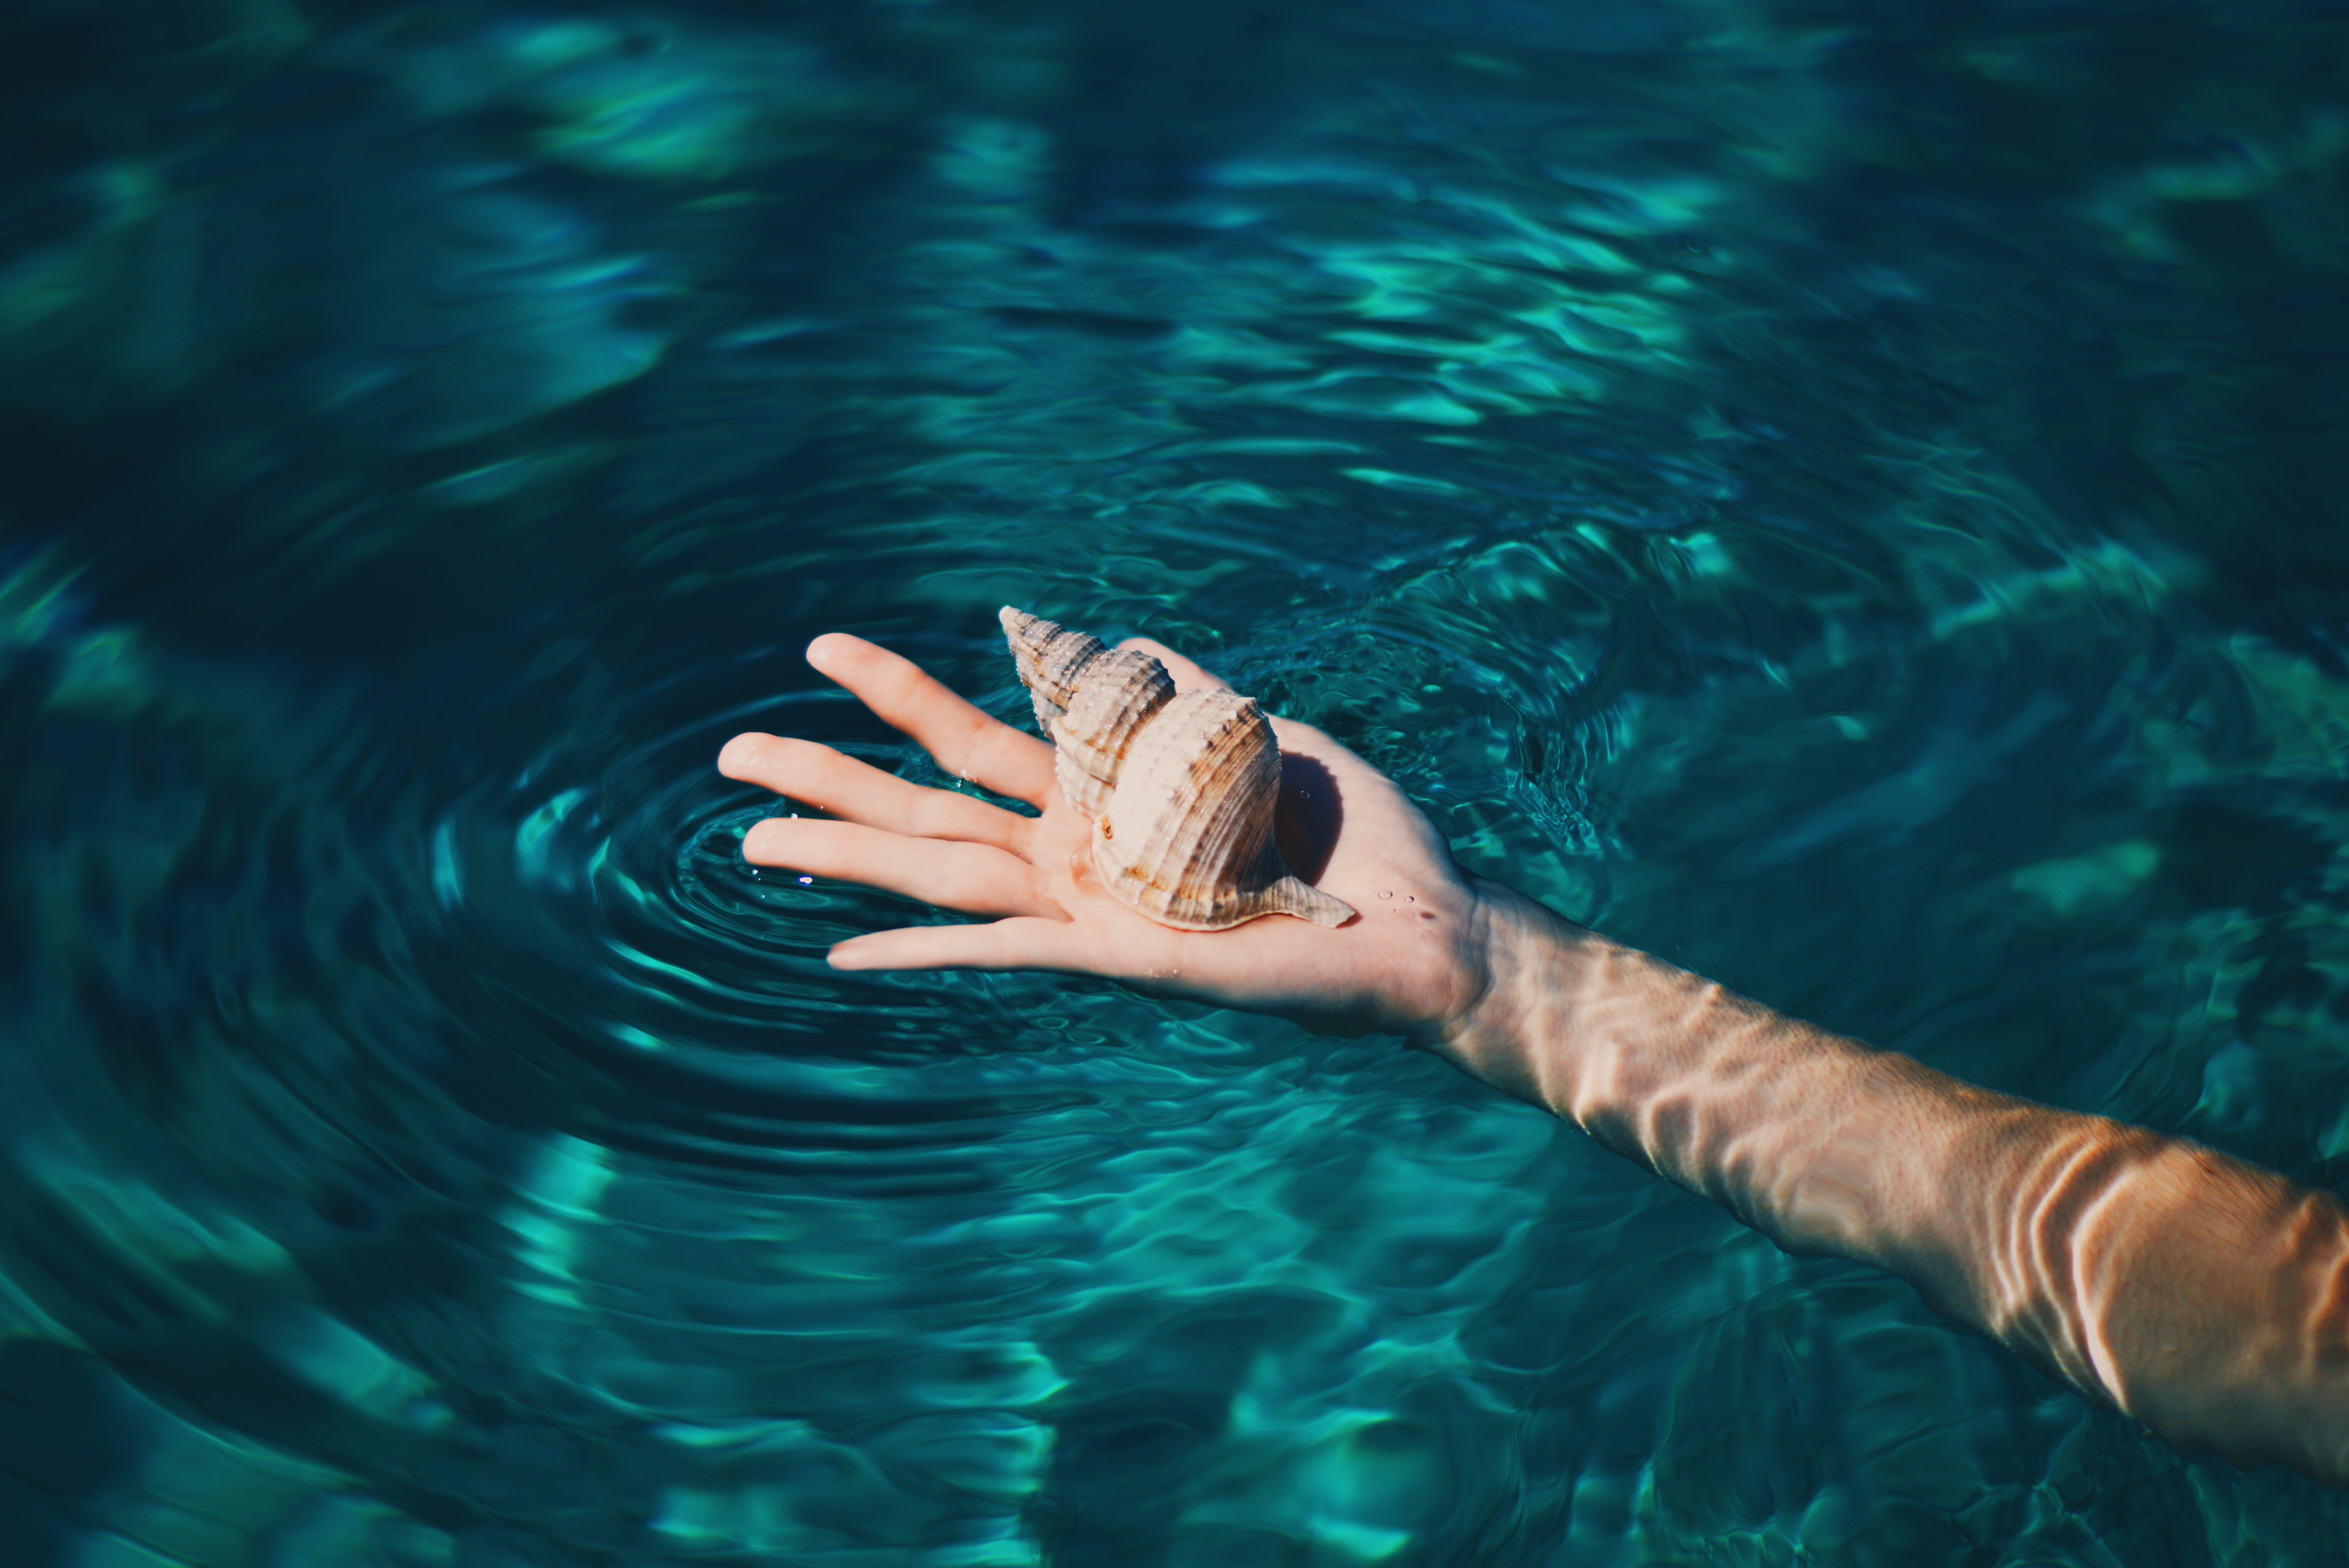 A person's hand holding a shell in a pool of water.